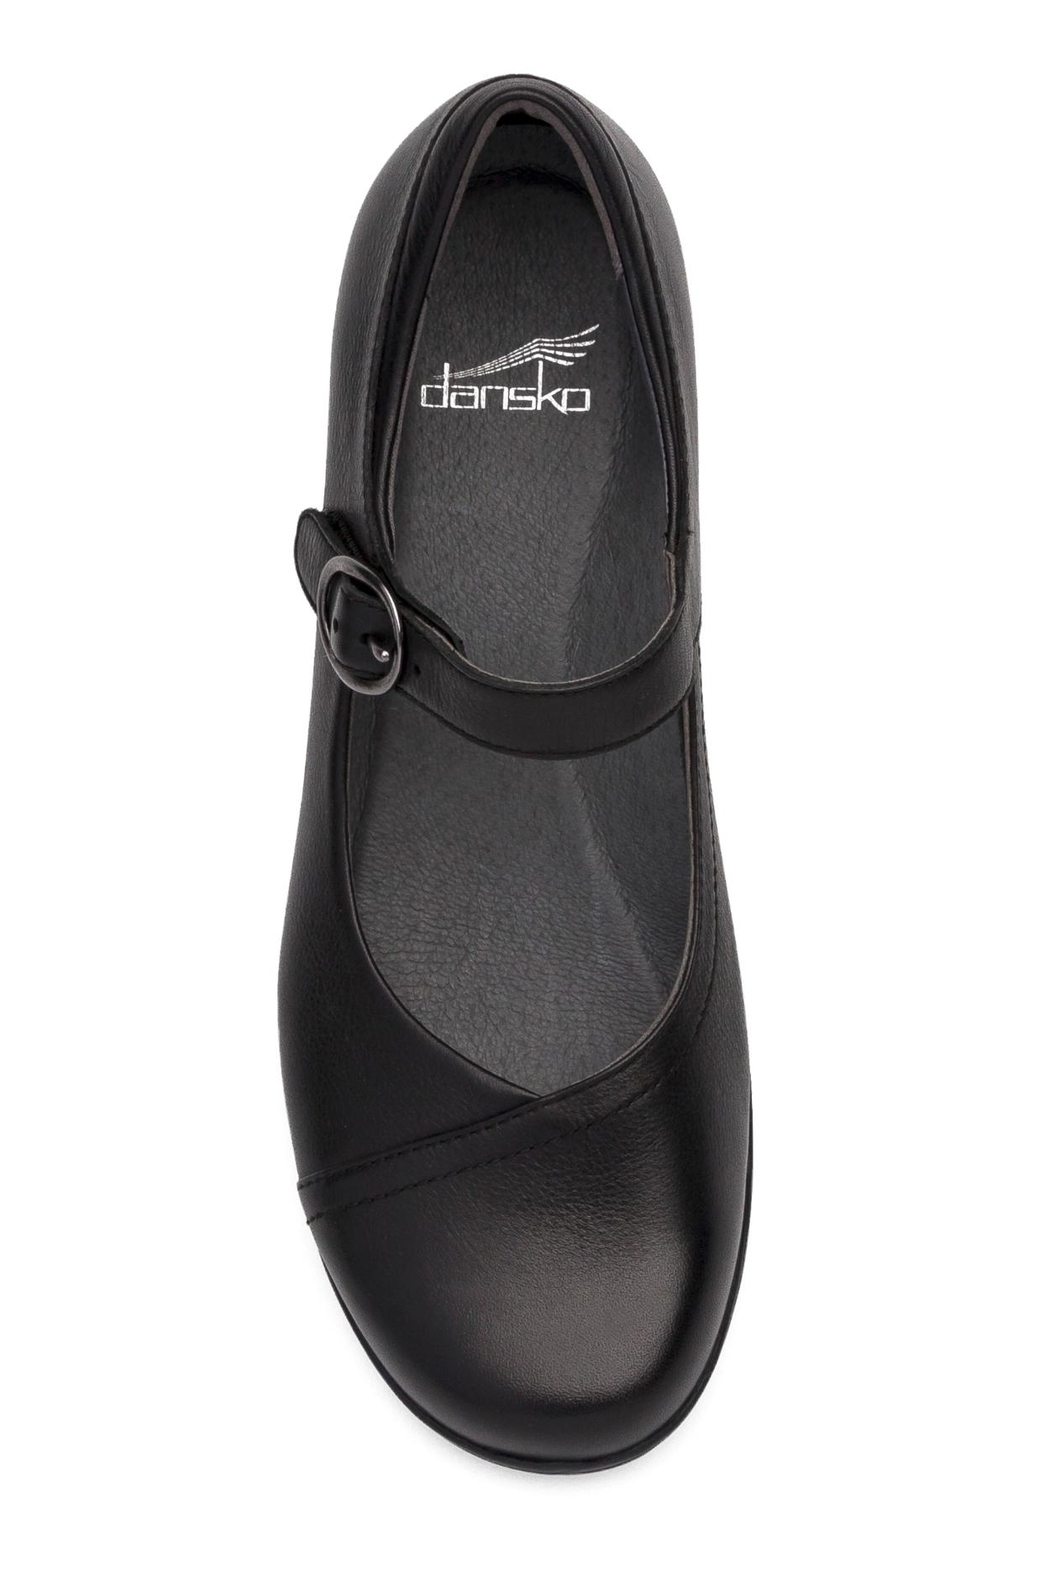 Dansko Fawna Black Shoes - Side Cropped Image